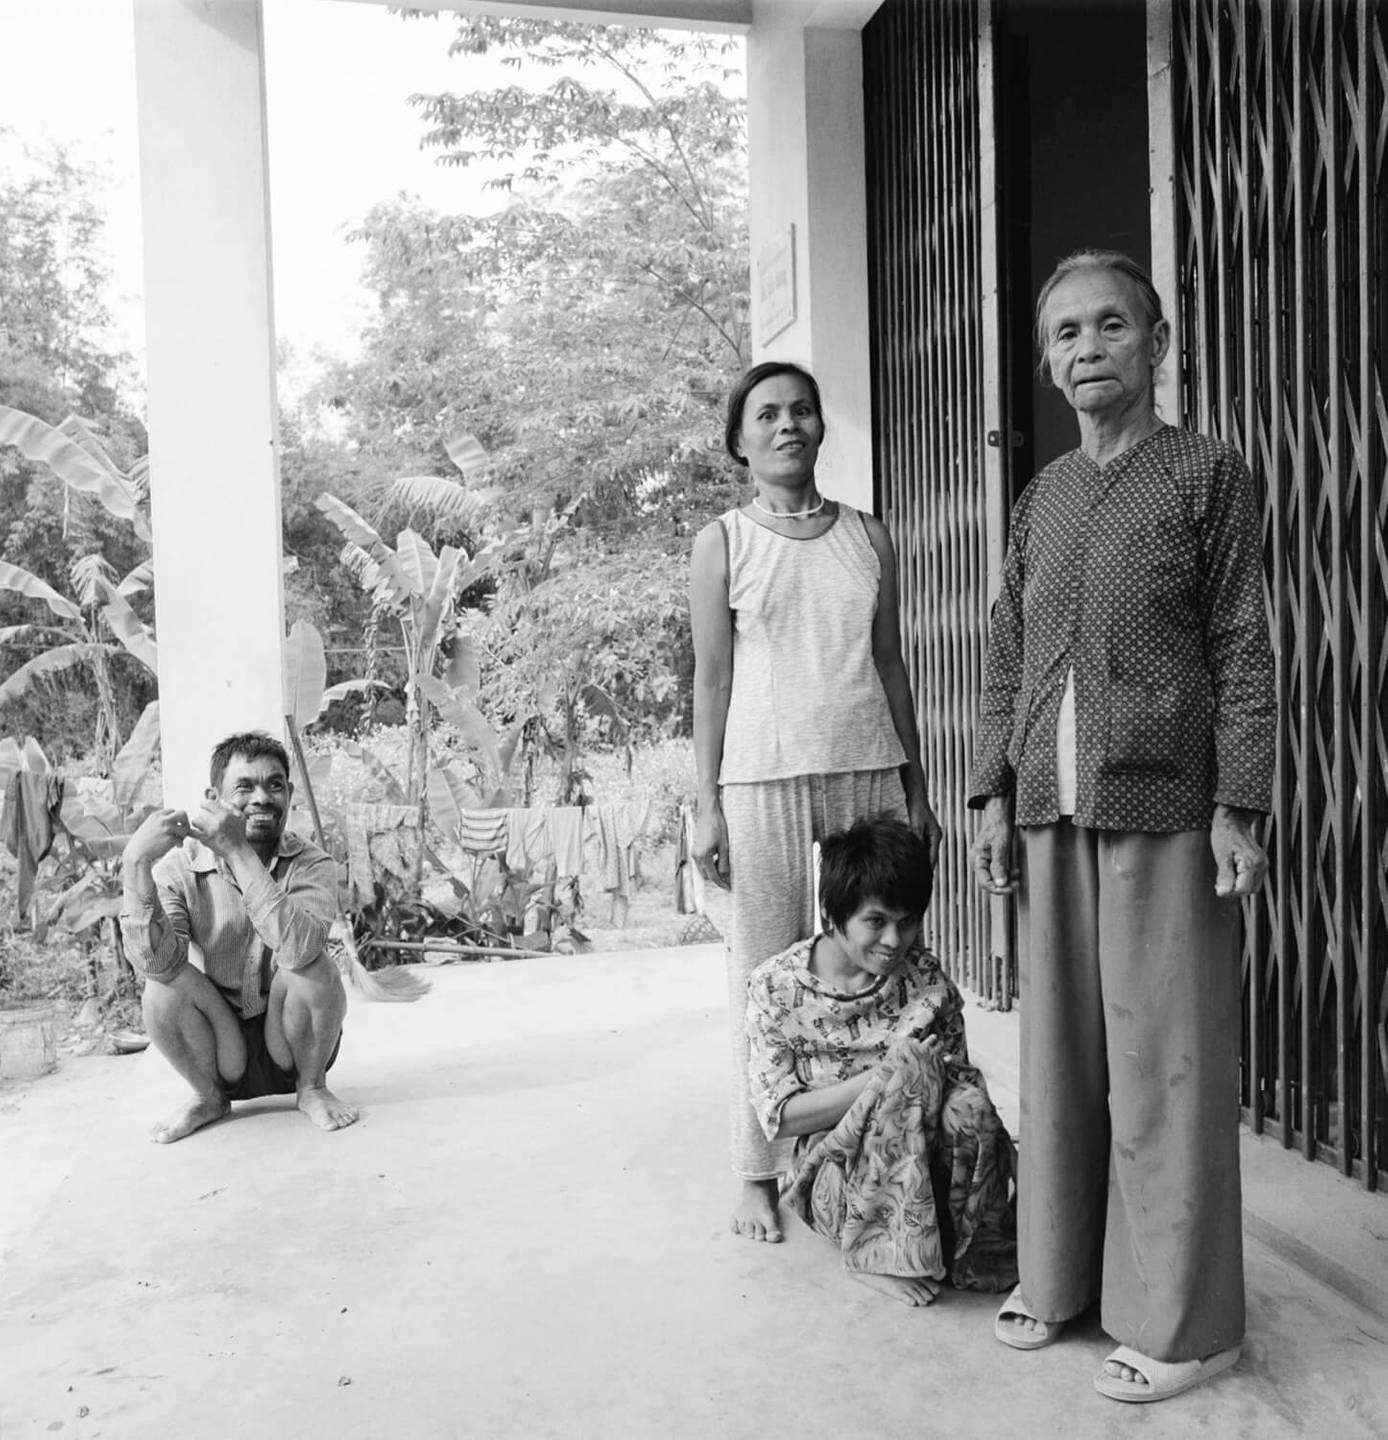 An Asian family of four outside their abode. The three youngest appearing to be deformed.